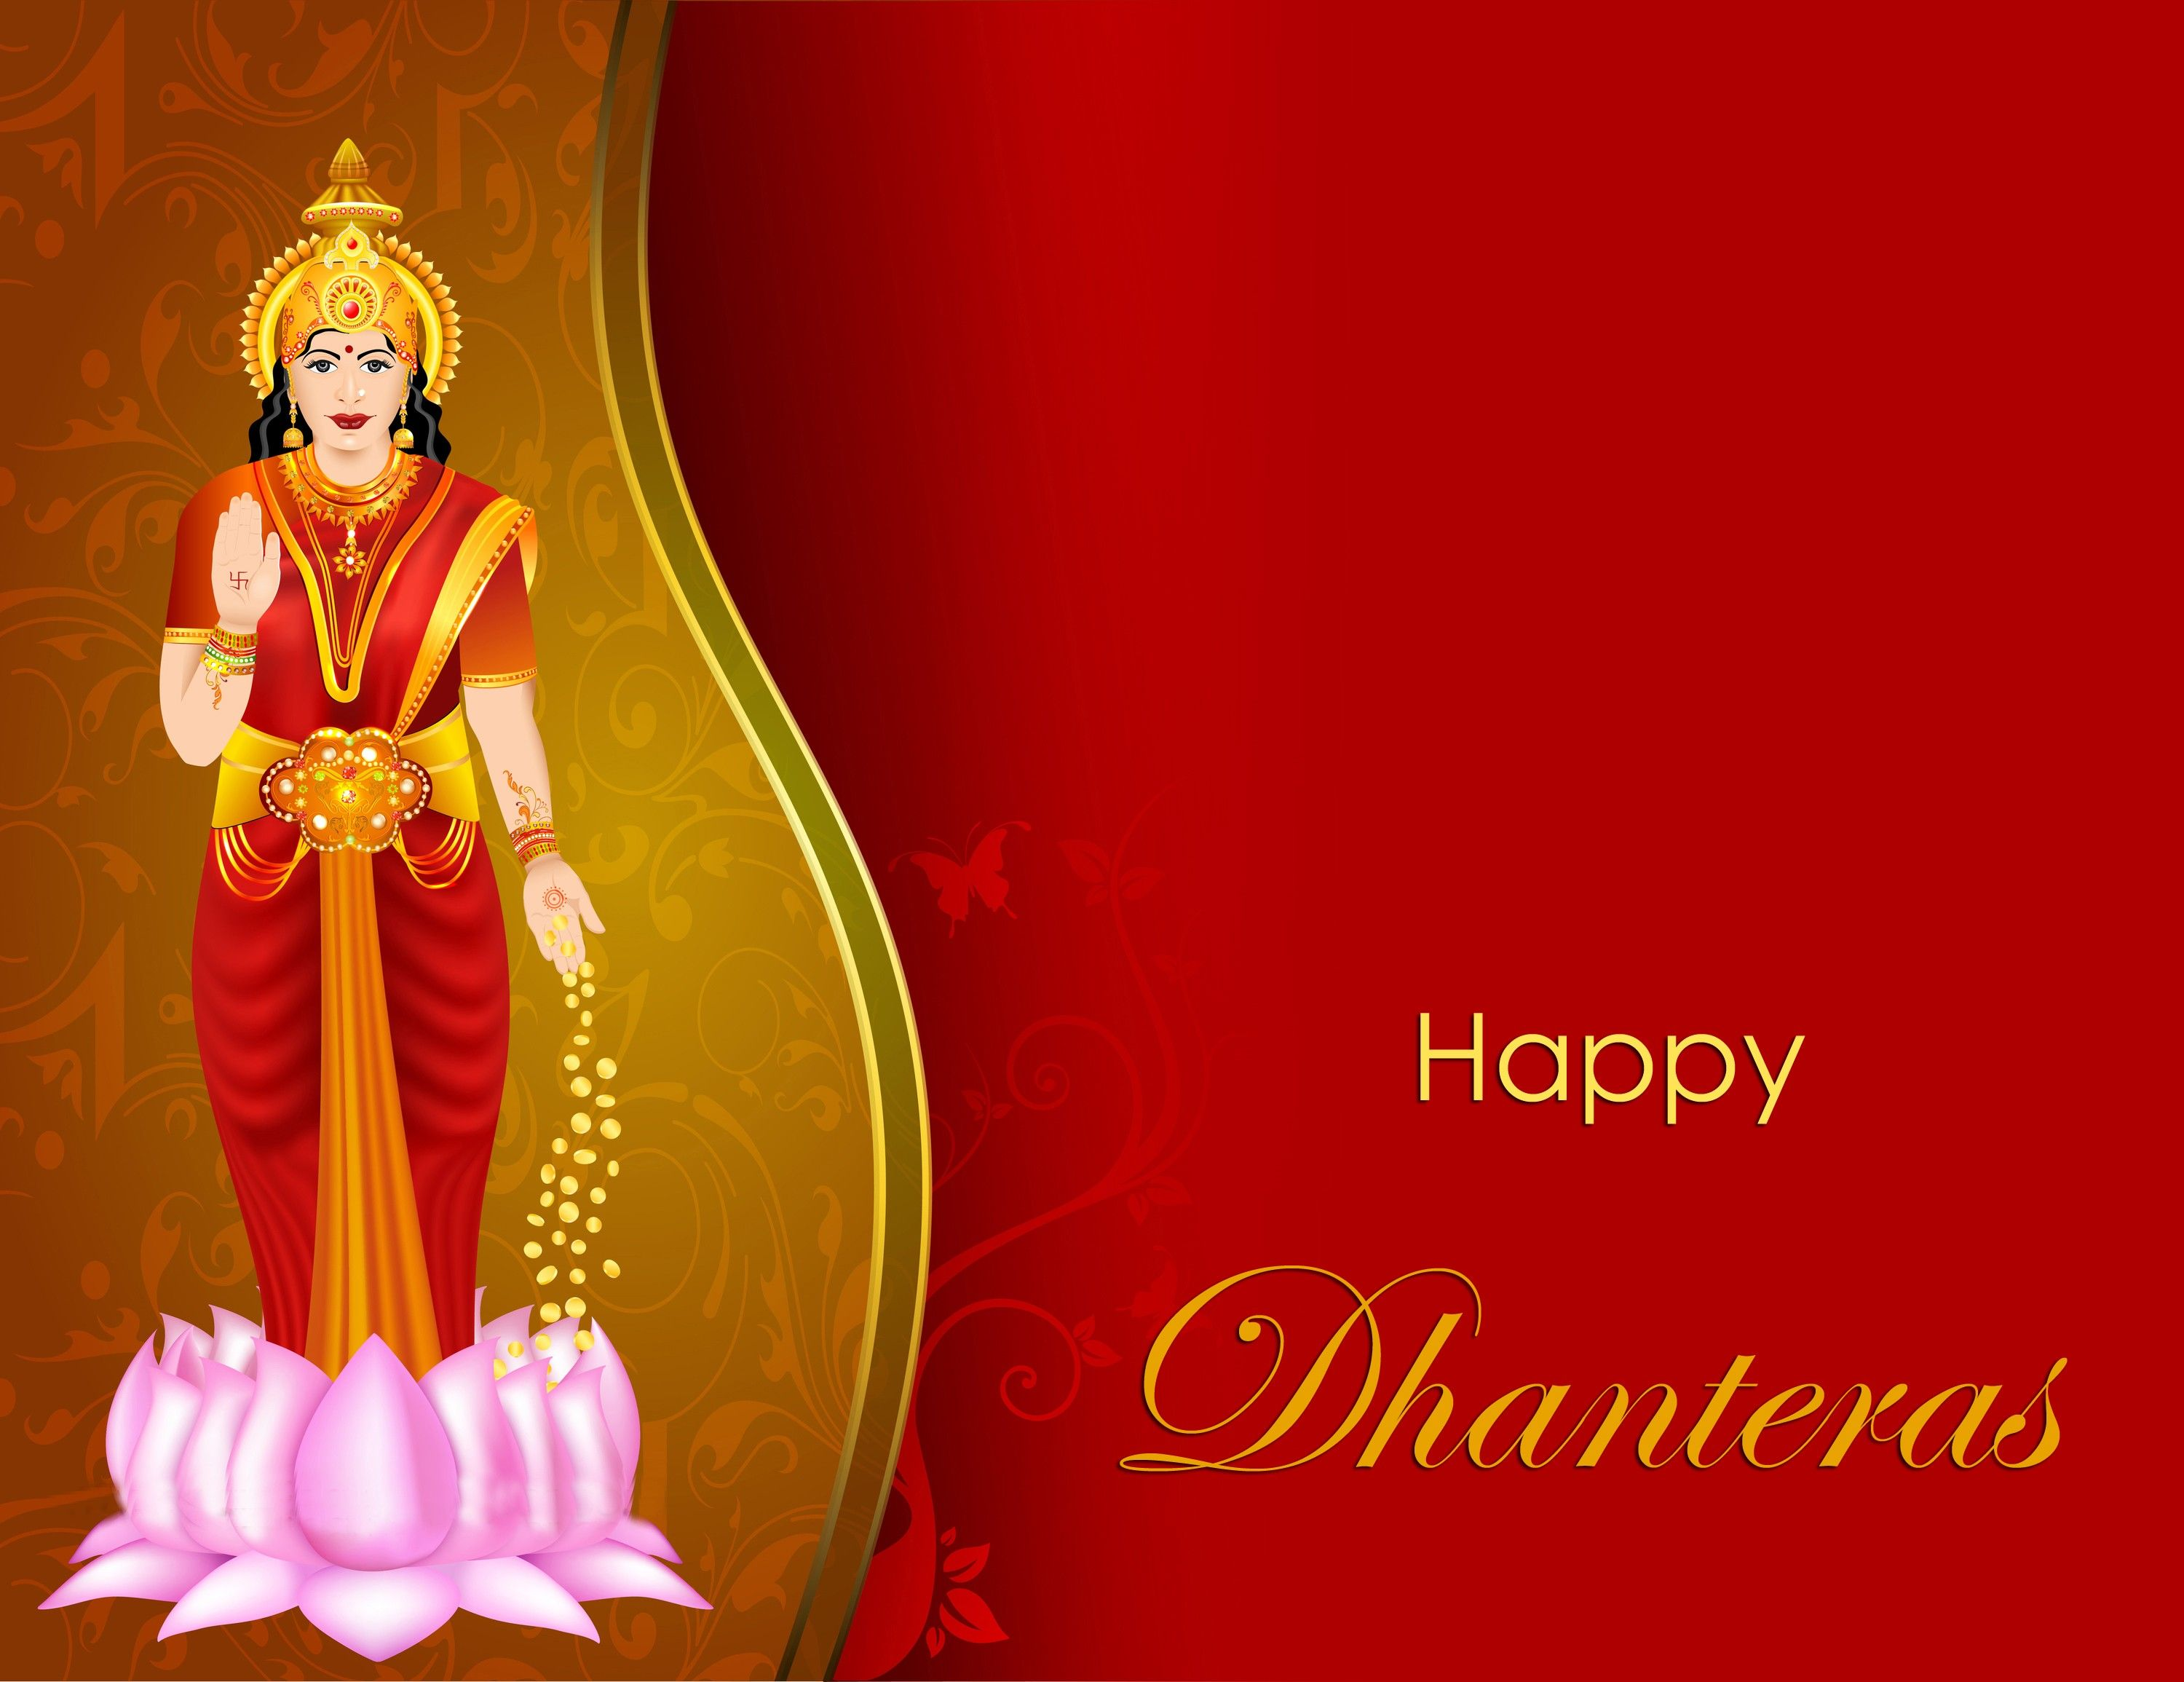 Dhanteras 2016 Images Wallpapers And Photos Free Download